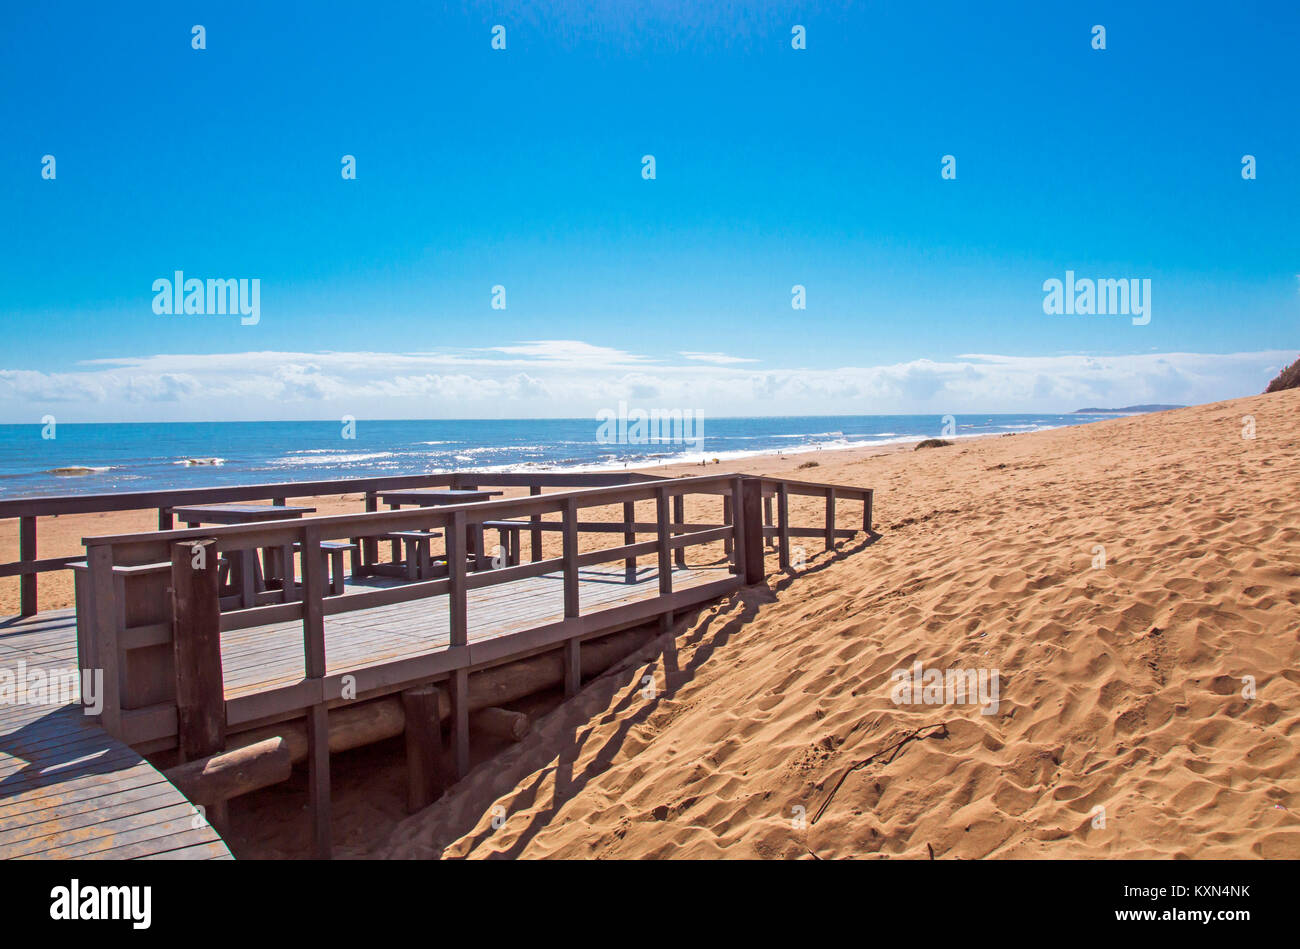 Empty wooden walkway entrance onto sandy beach against sea and blue cloudy sky landscape at Mtunzini in South Africa Stock Photo